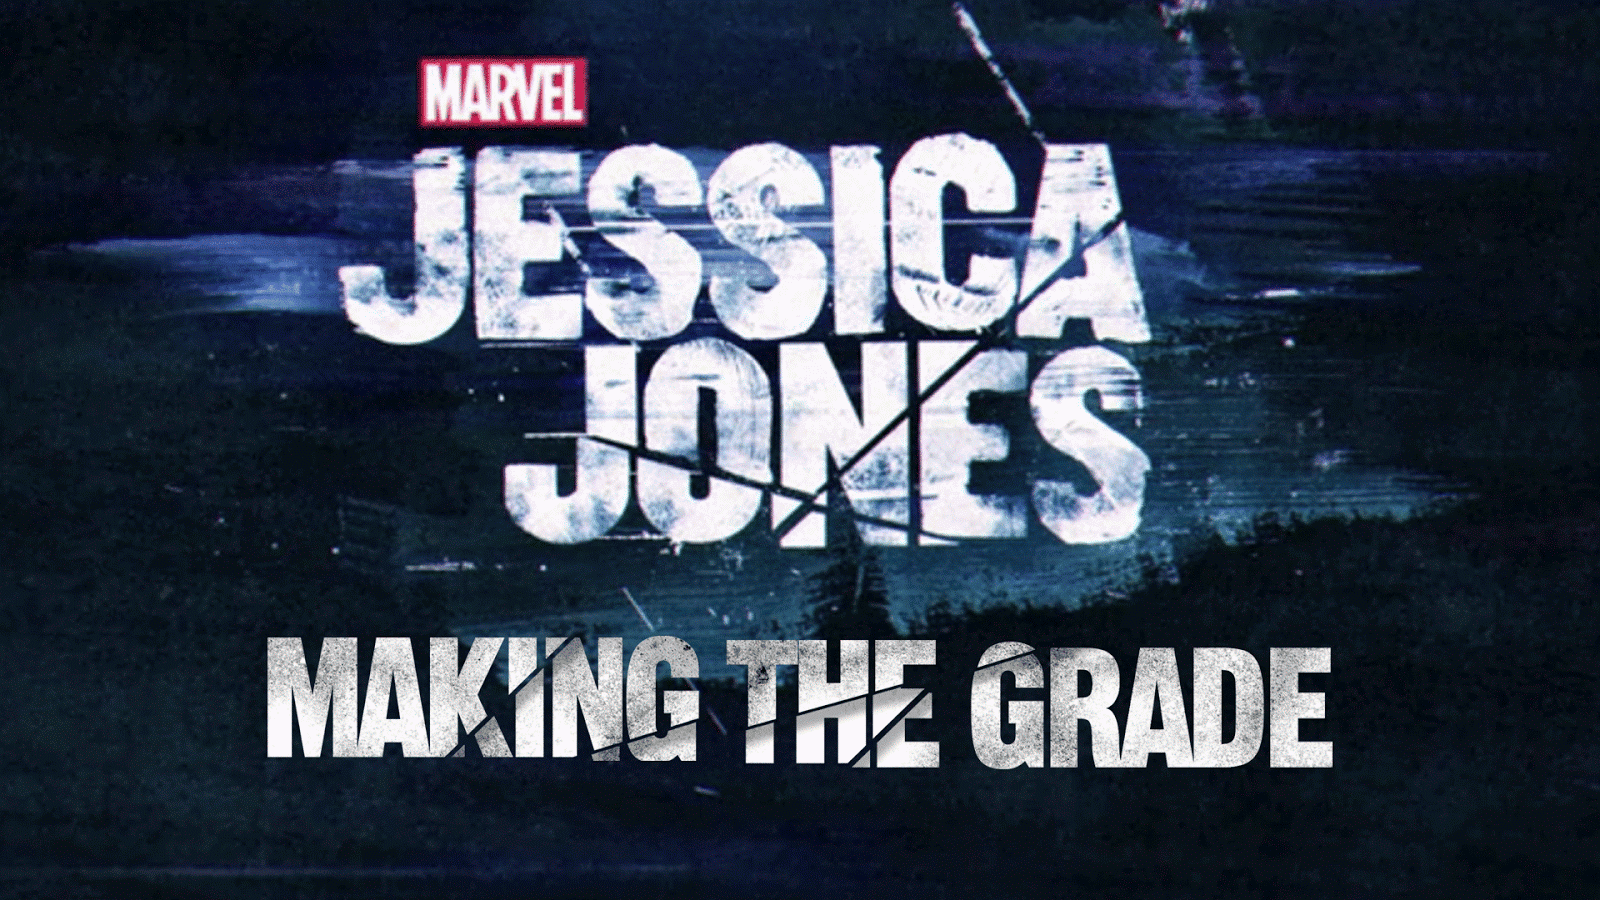 HD Jessica Jones Season 1 photos screen shots poster